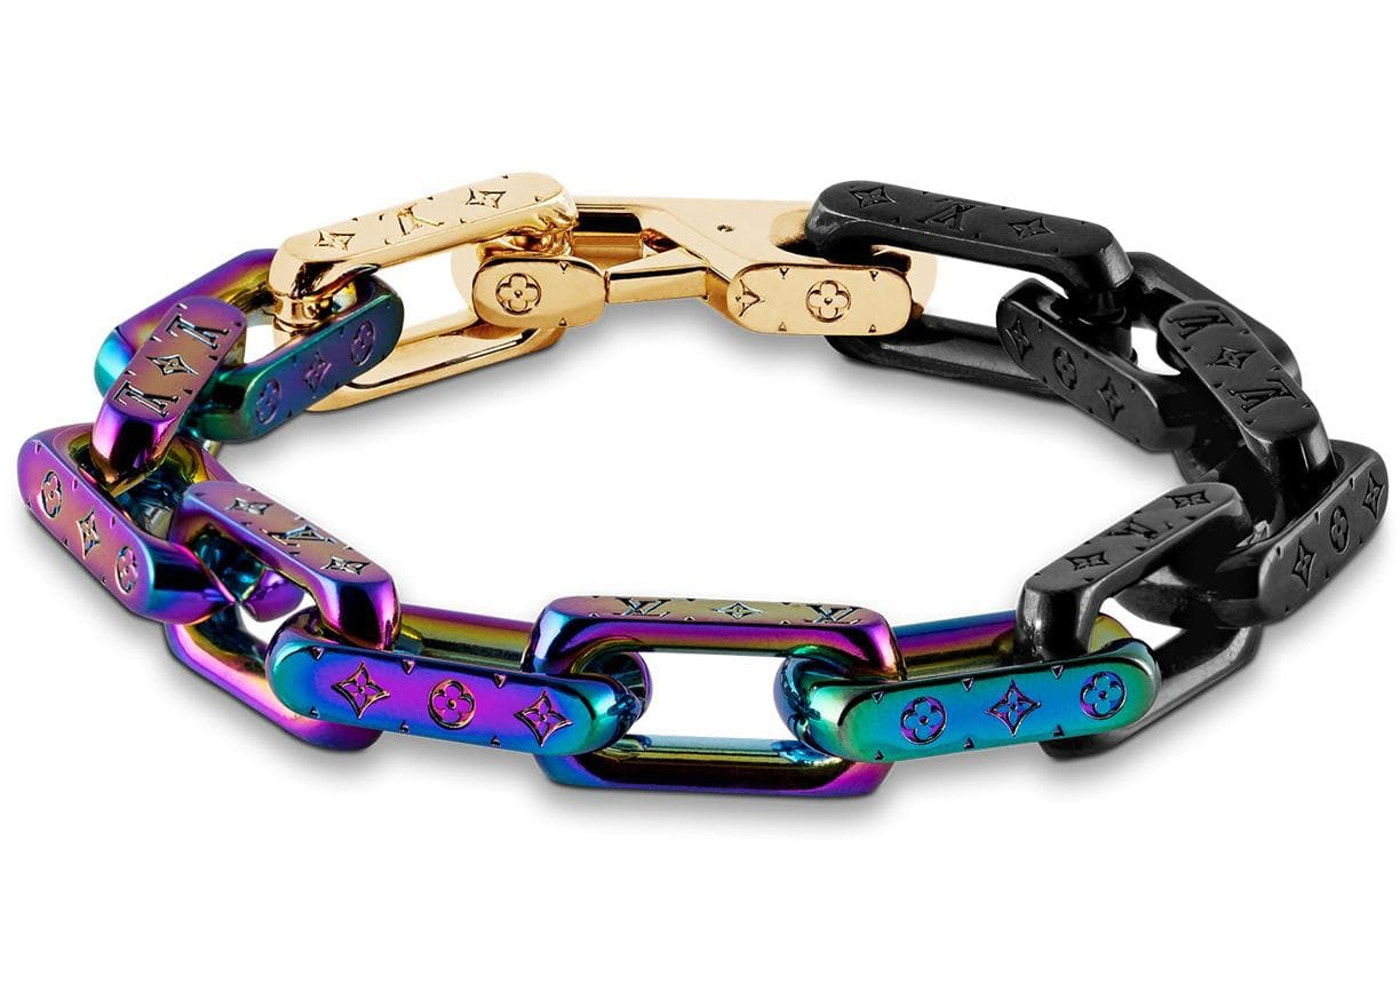 Louis Vuitton Chain Bracelet Engraved Monogram Colors Black Gold Multicolor